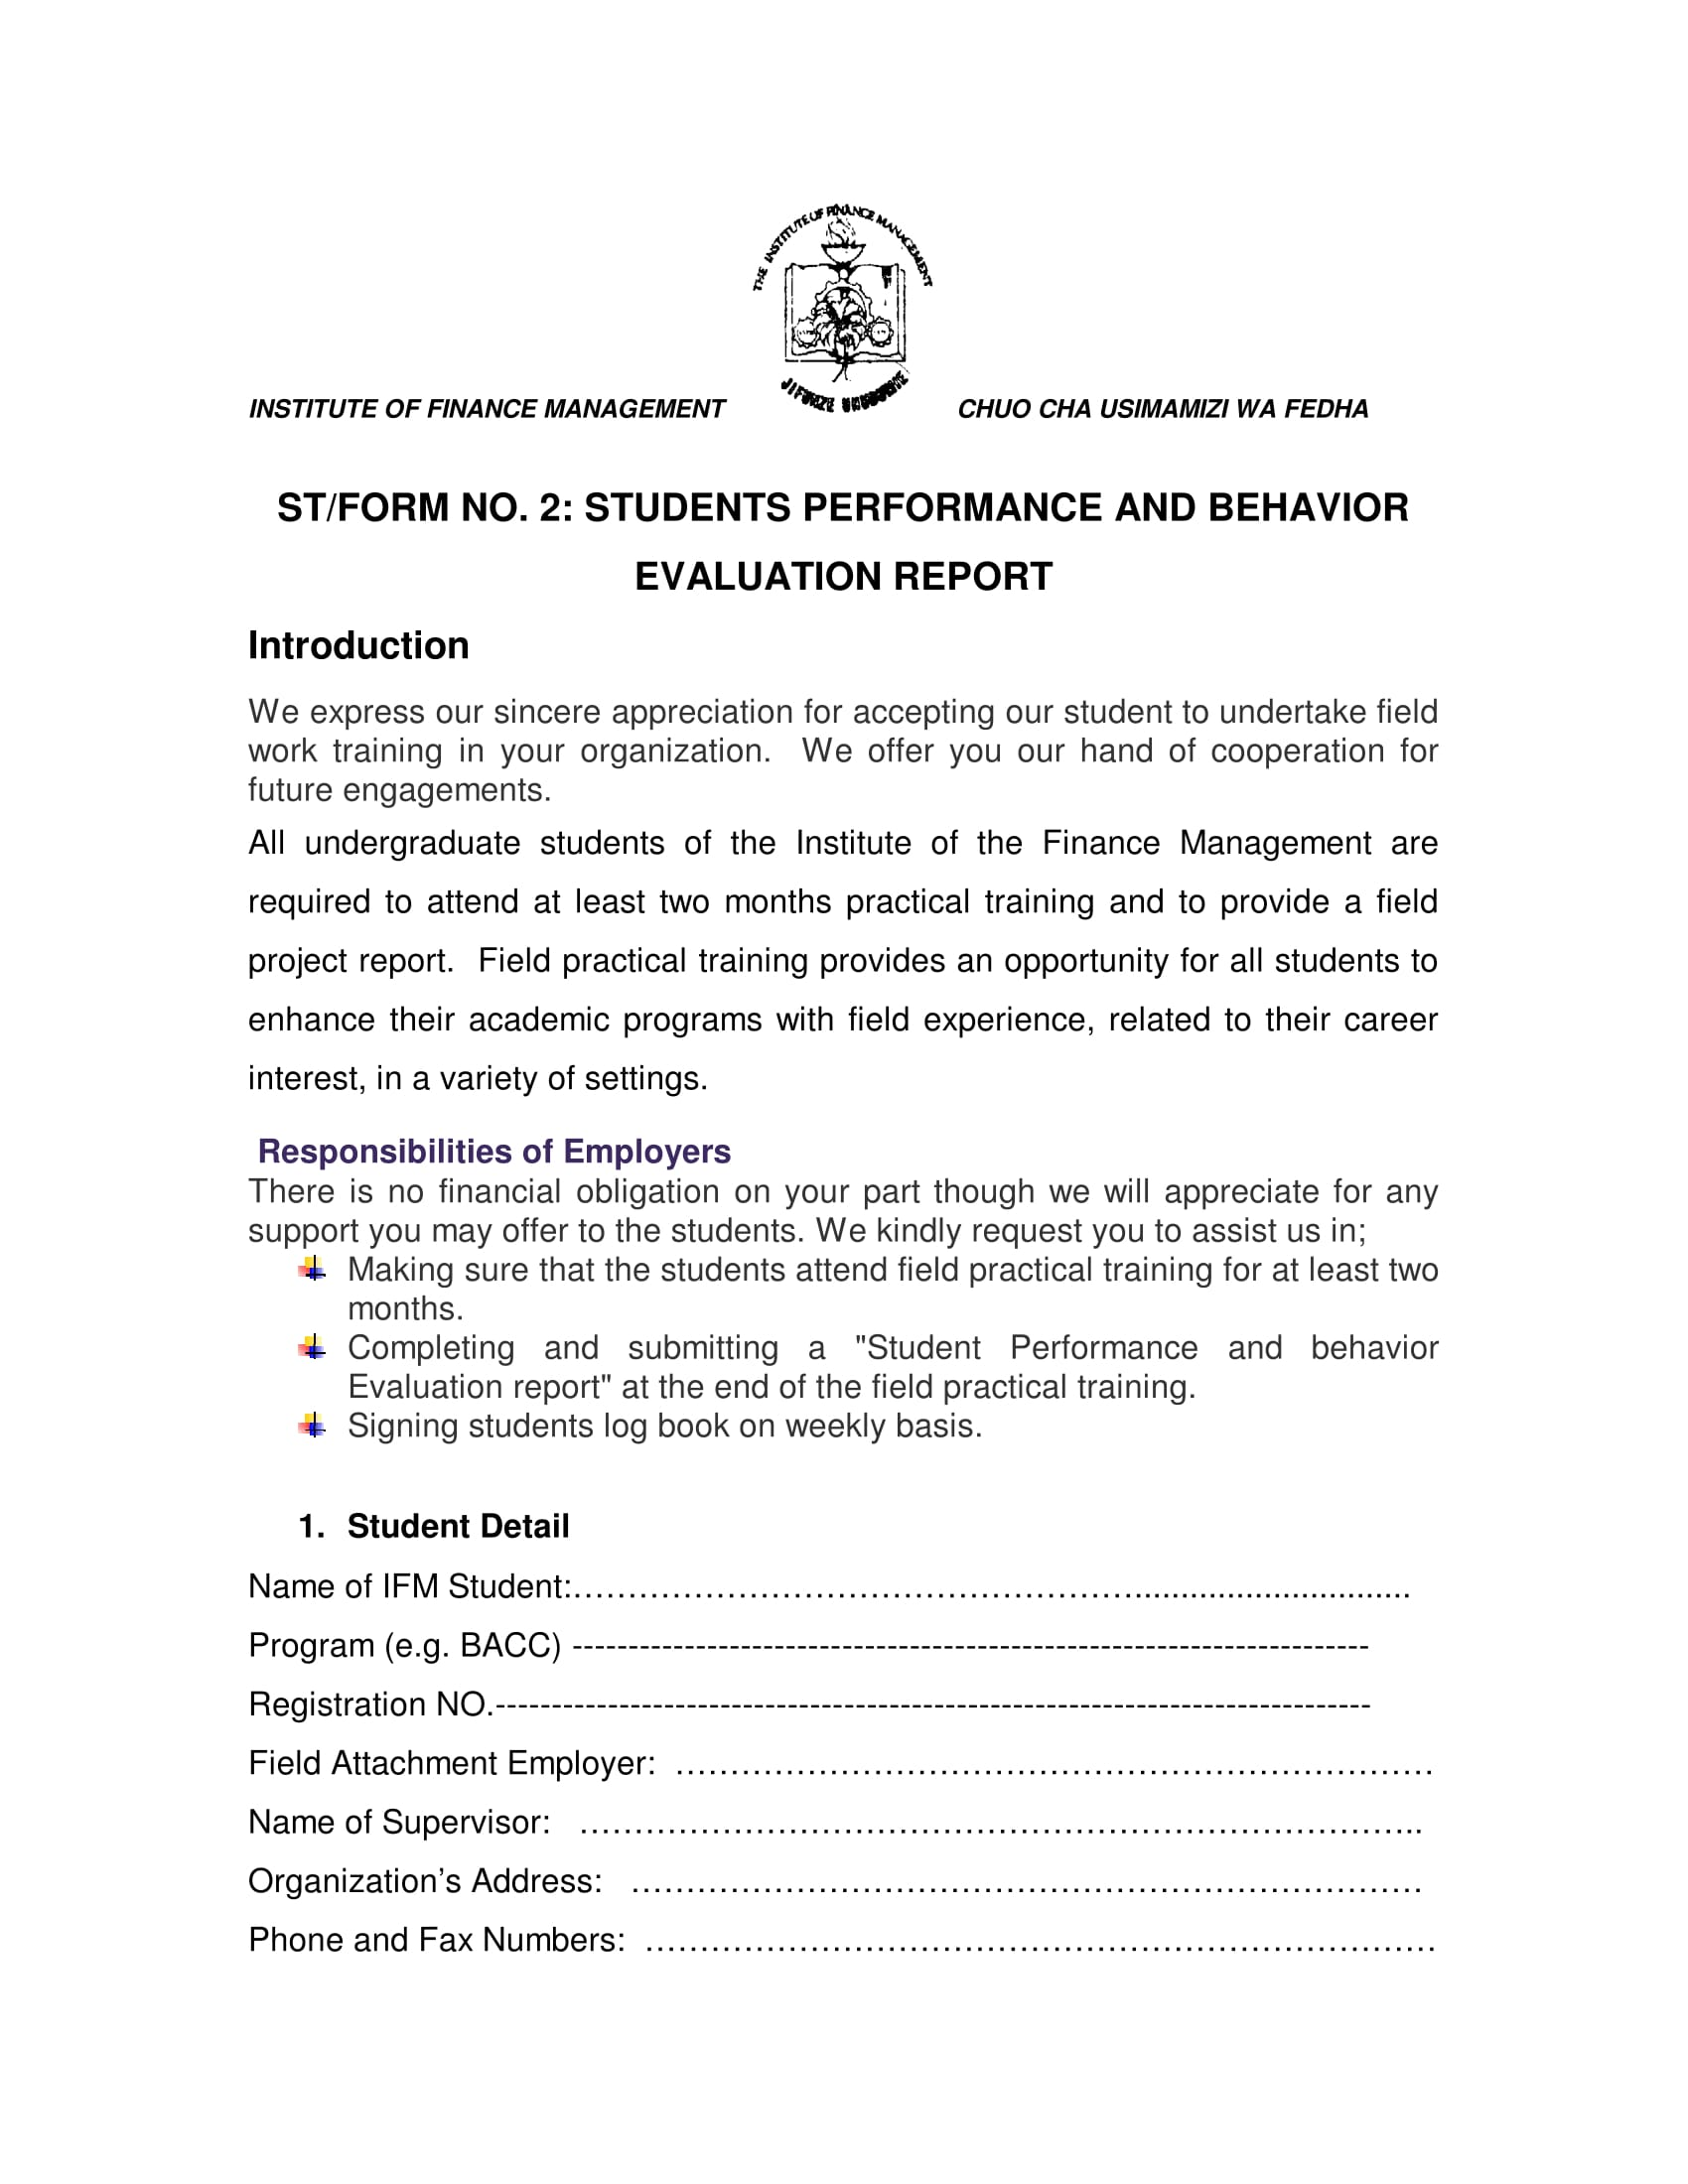 performance and behavior evaluation report 1